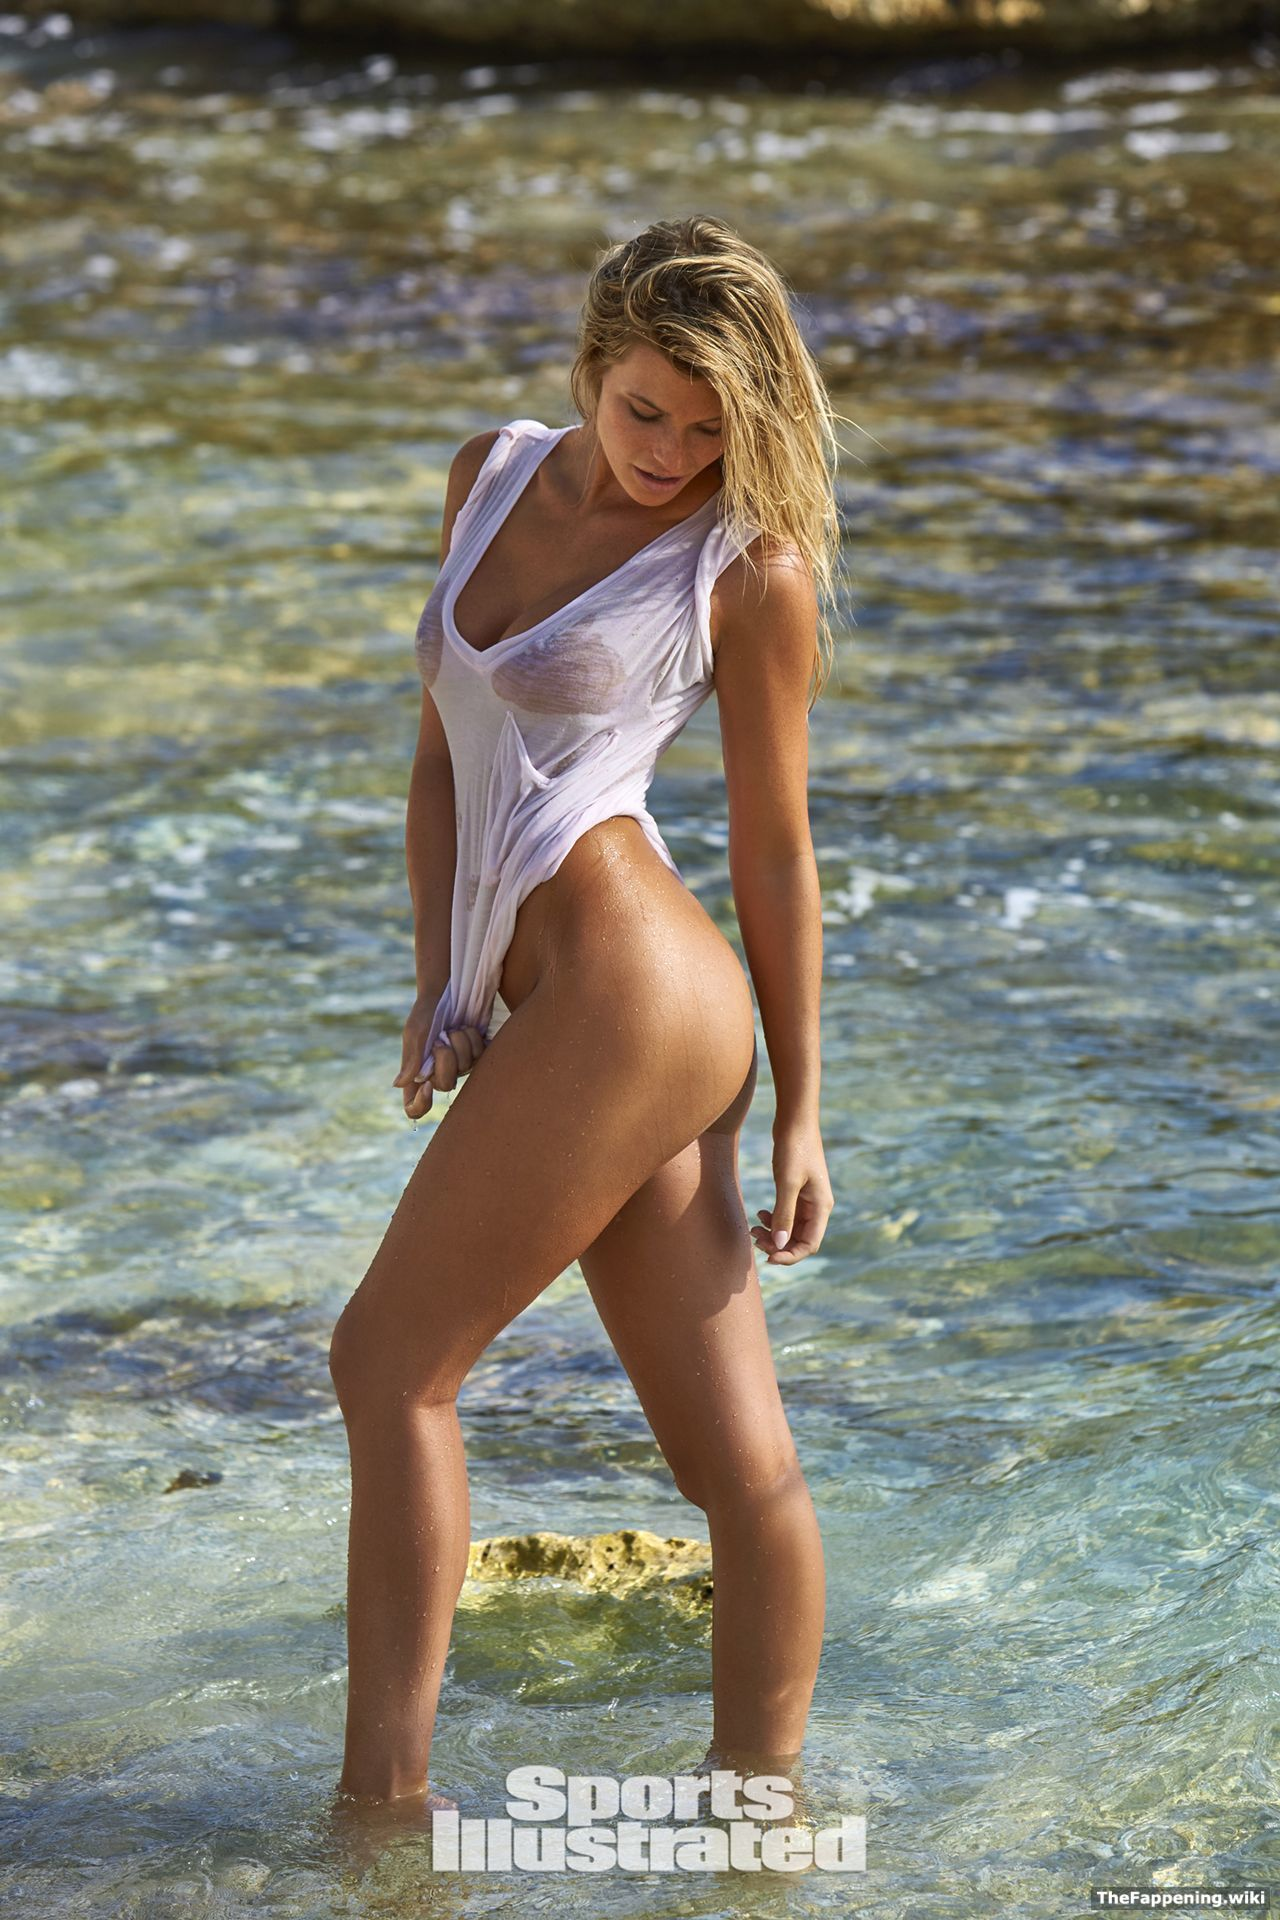 Of The Sports Illustrated Swimsuit Edition Long Legs Big Tits And A Fantastic Ass Are All Reasons She Was Cast And She Delivered With A Series Of